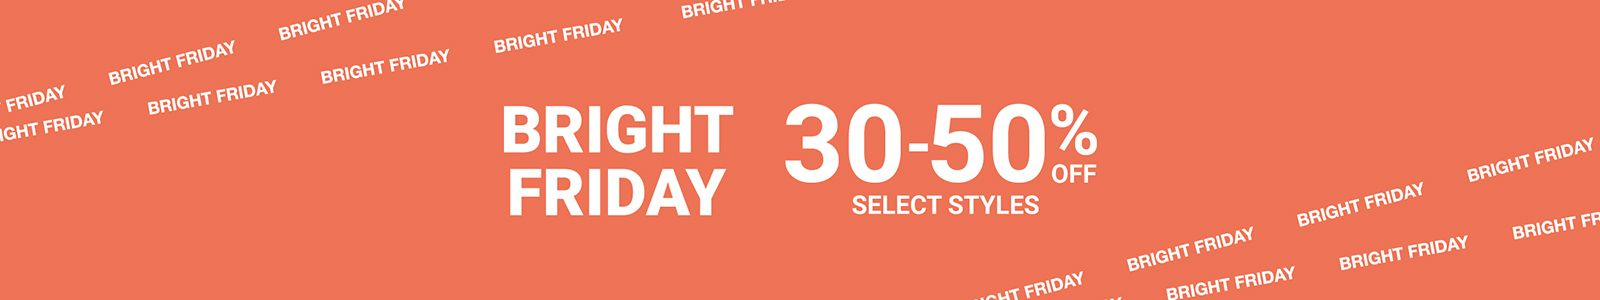 Bright Friday, 30-50% Off, Select Styles